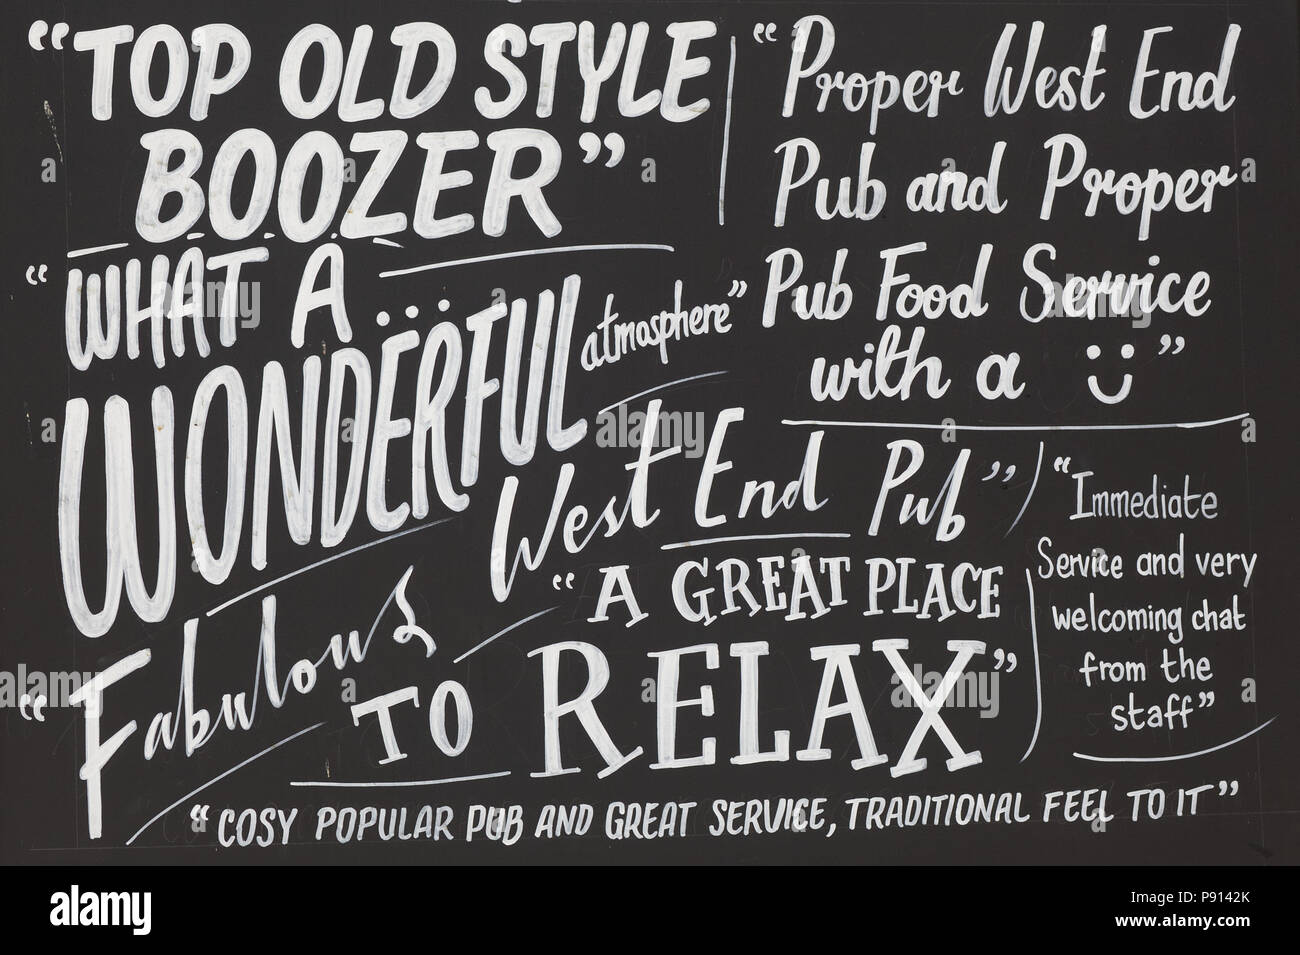 traditional British west end pub, blackboard sign Stock Photo